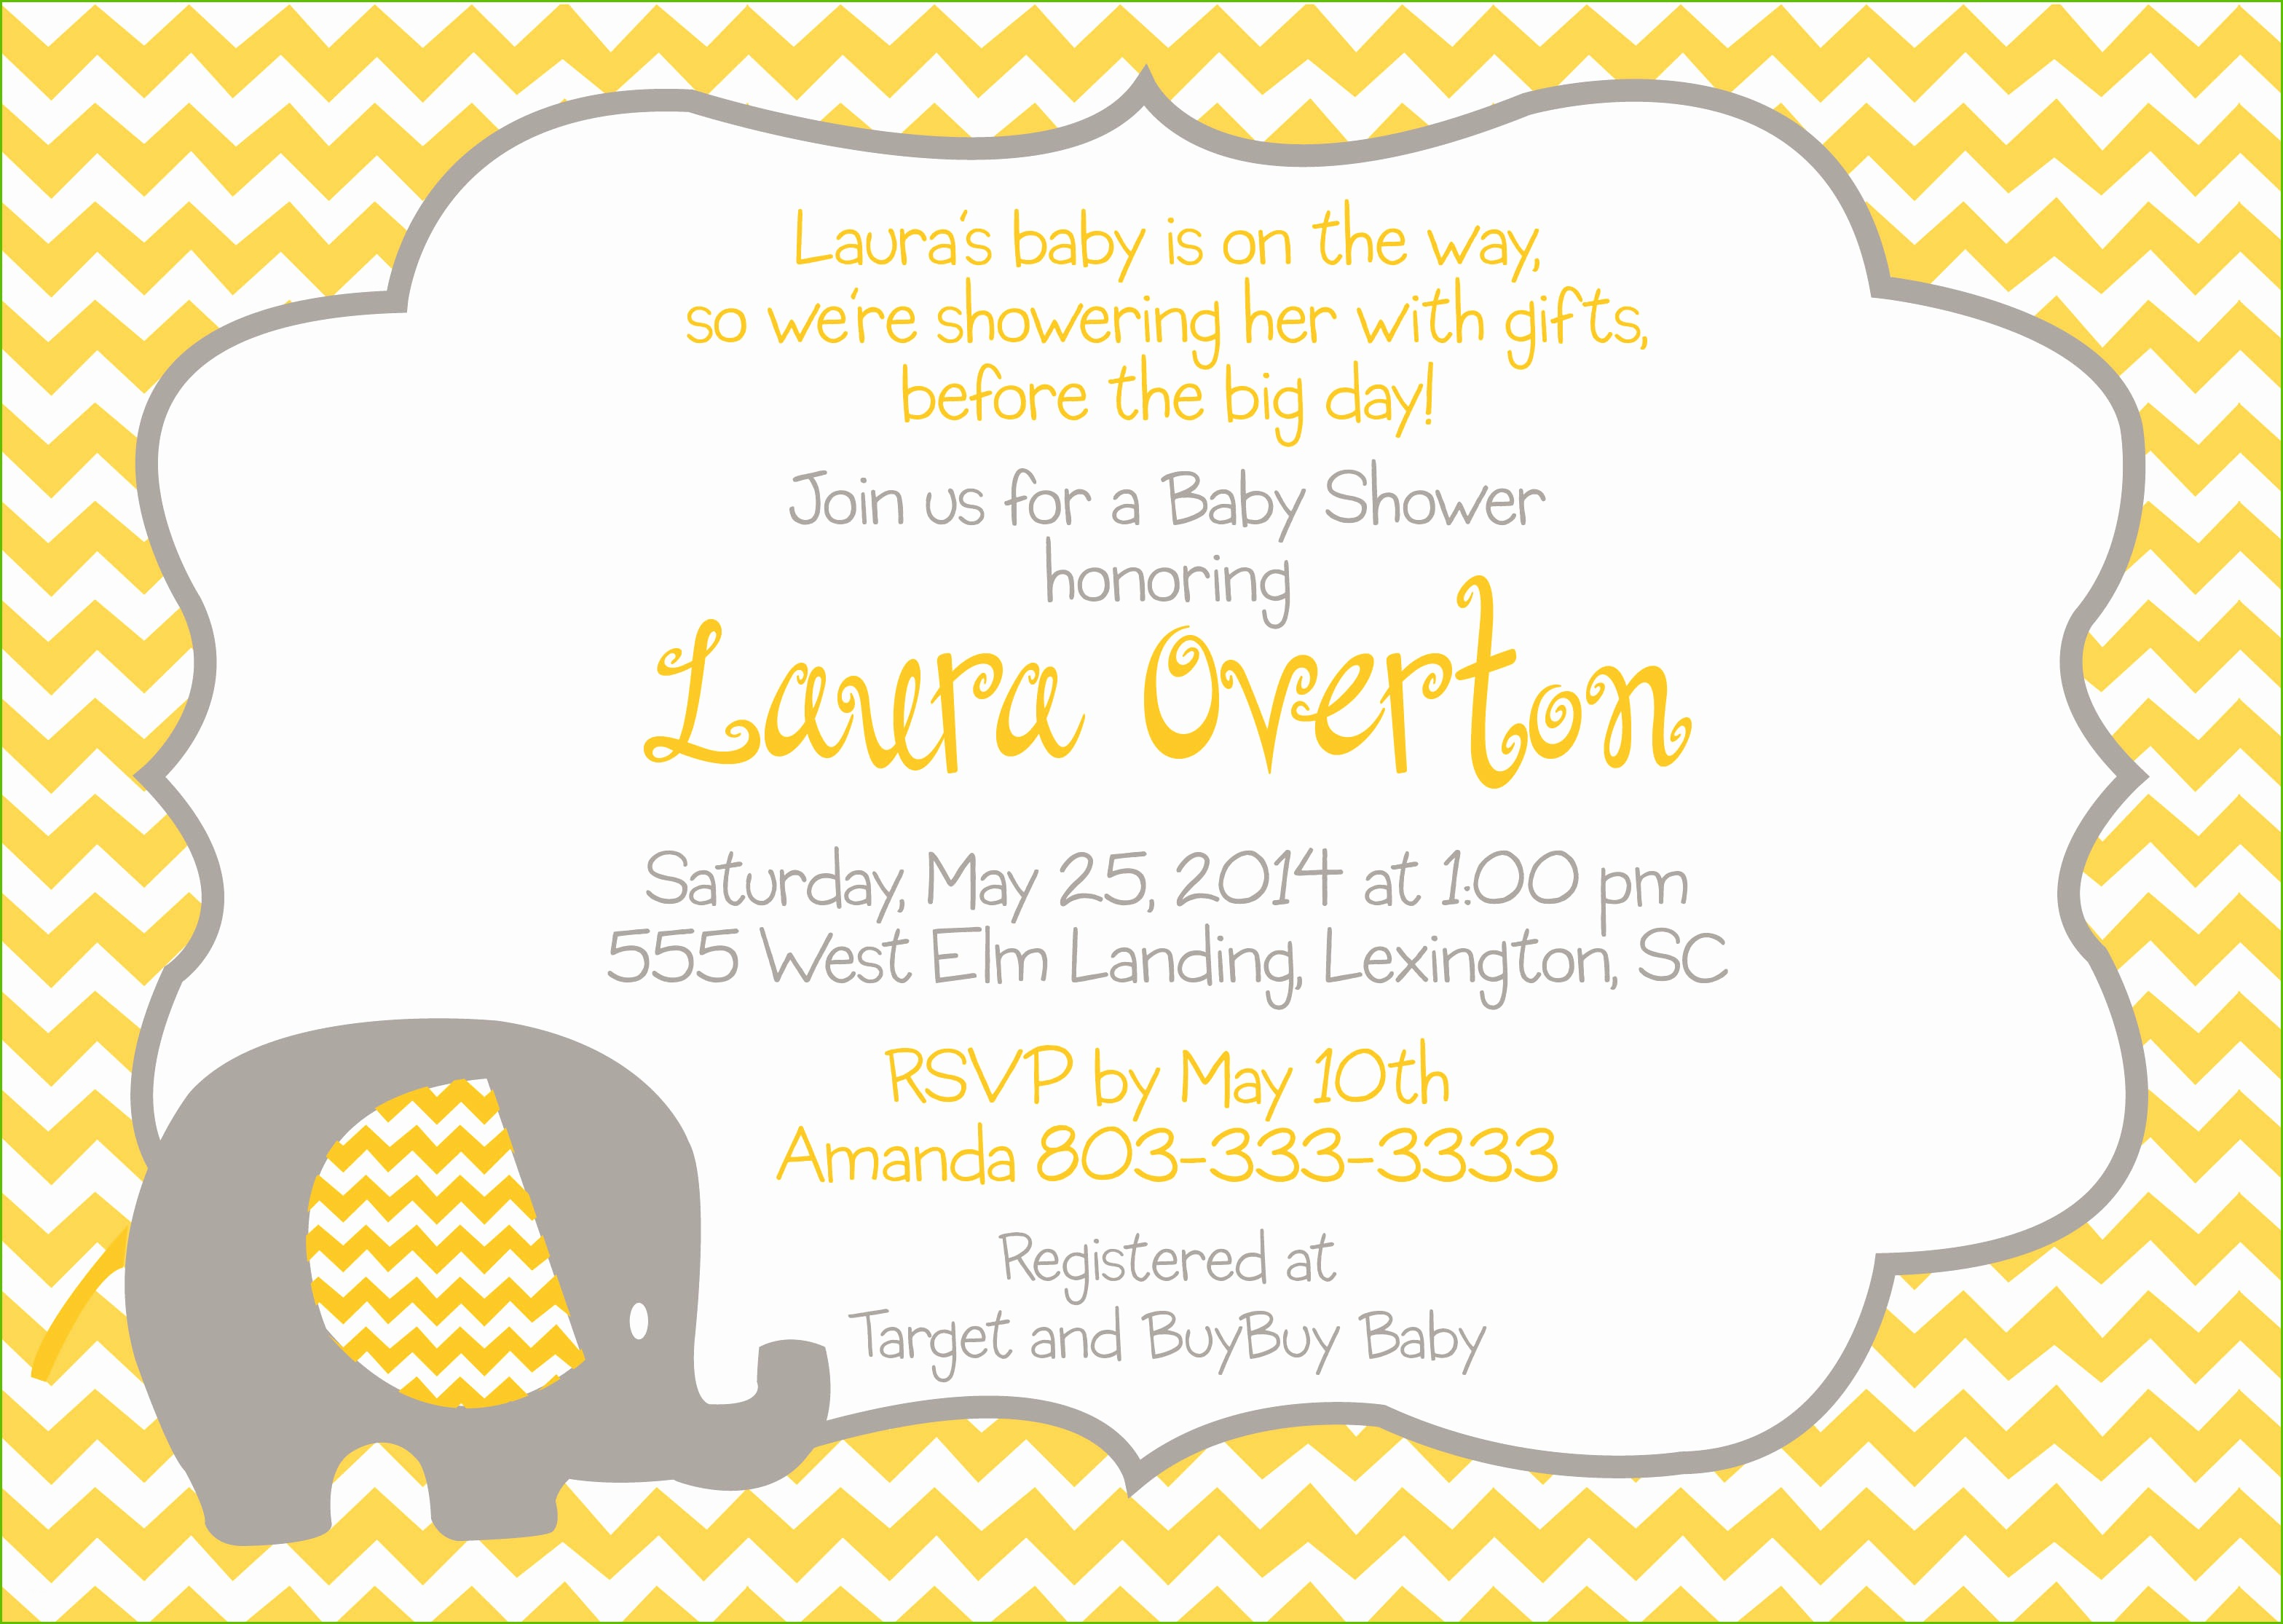 Full Size of Baby Shower:inspirational Elephant Baby Shower Invitations Photo Concepts Elephant Baby Shower Invitations Or Unique Baby Shower Gifts With Baby Shower Door Prizes Plus Baby Shower Messages Together With Creative Baby Shower Gifts As Well As Baby Shower Nail Designs And Baby Shower Corsage